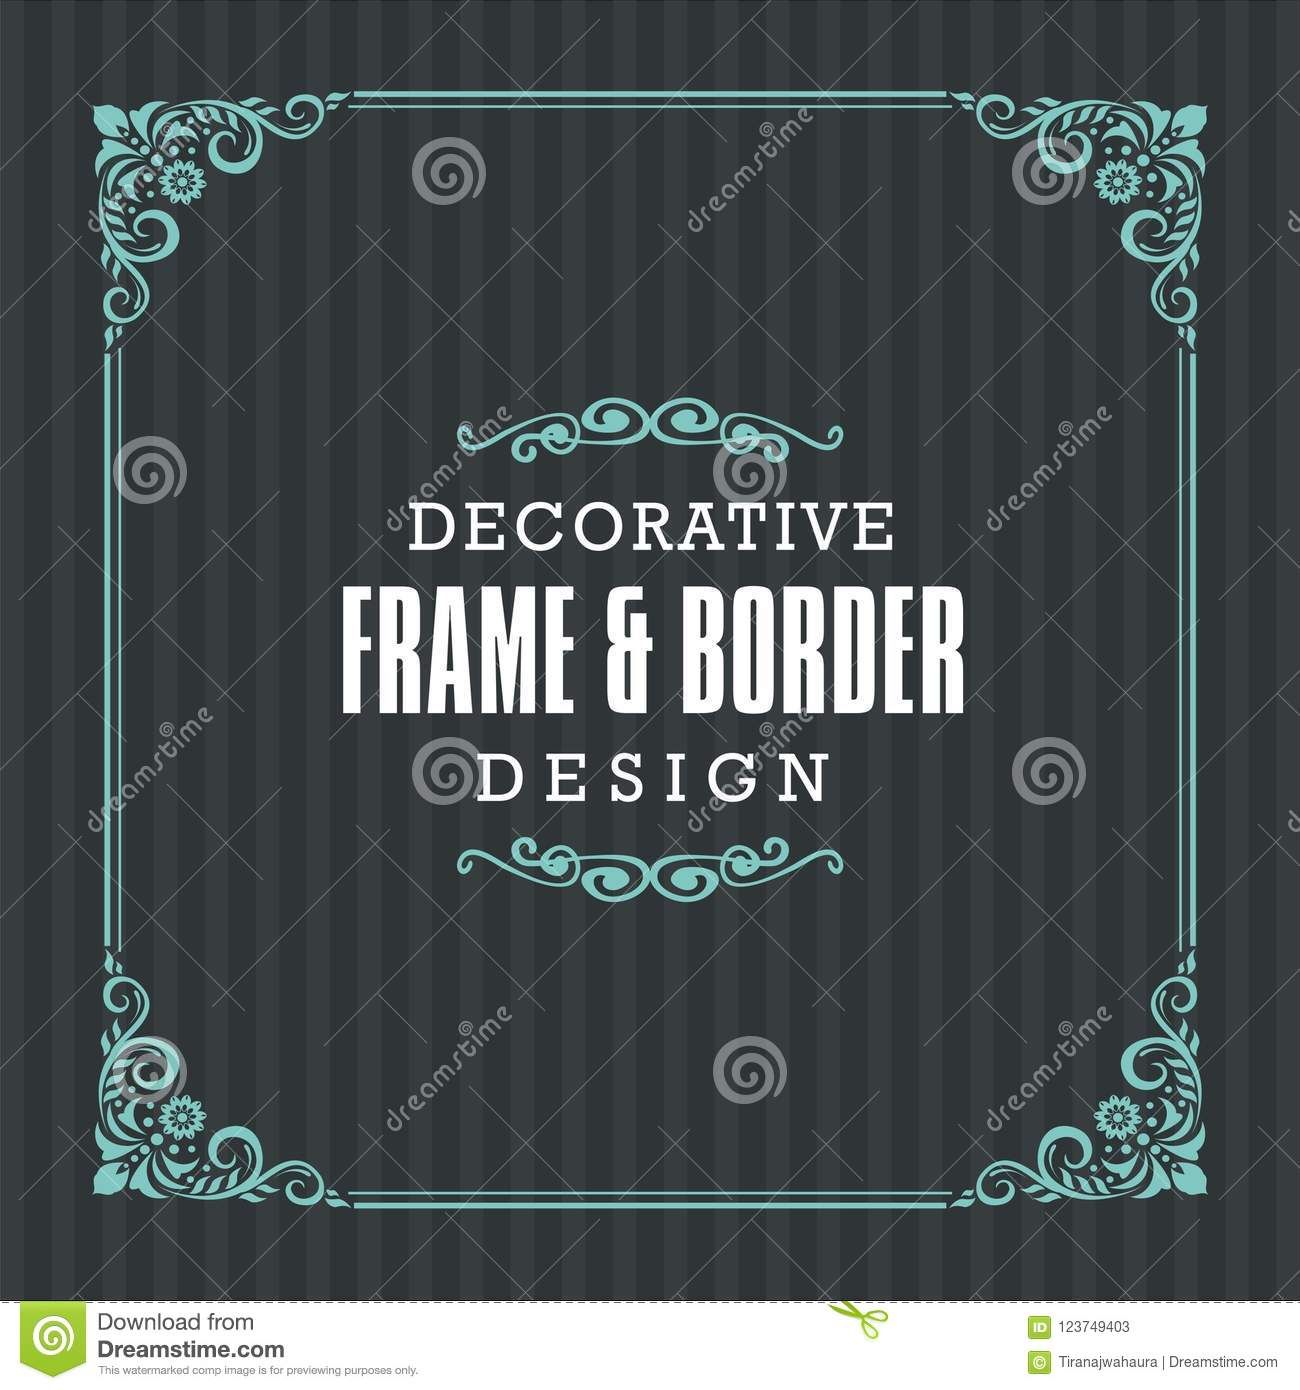 Decorative frame, border with Ornamental Line style